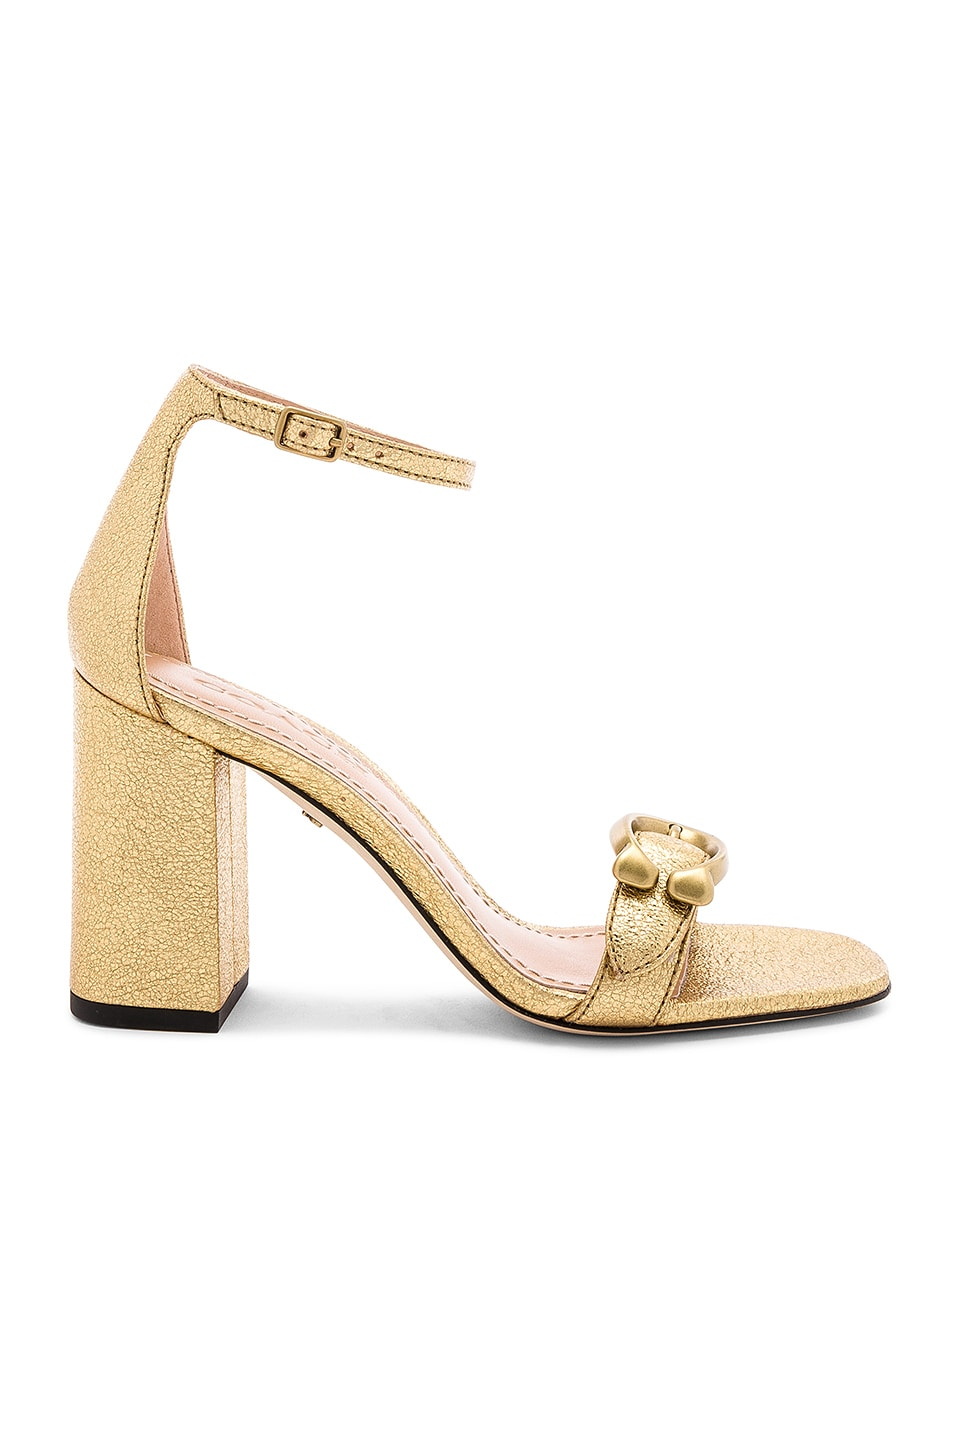 Coach 1941 Maya Sandal in Gold